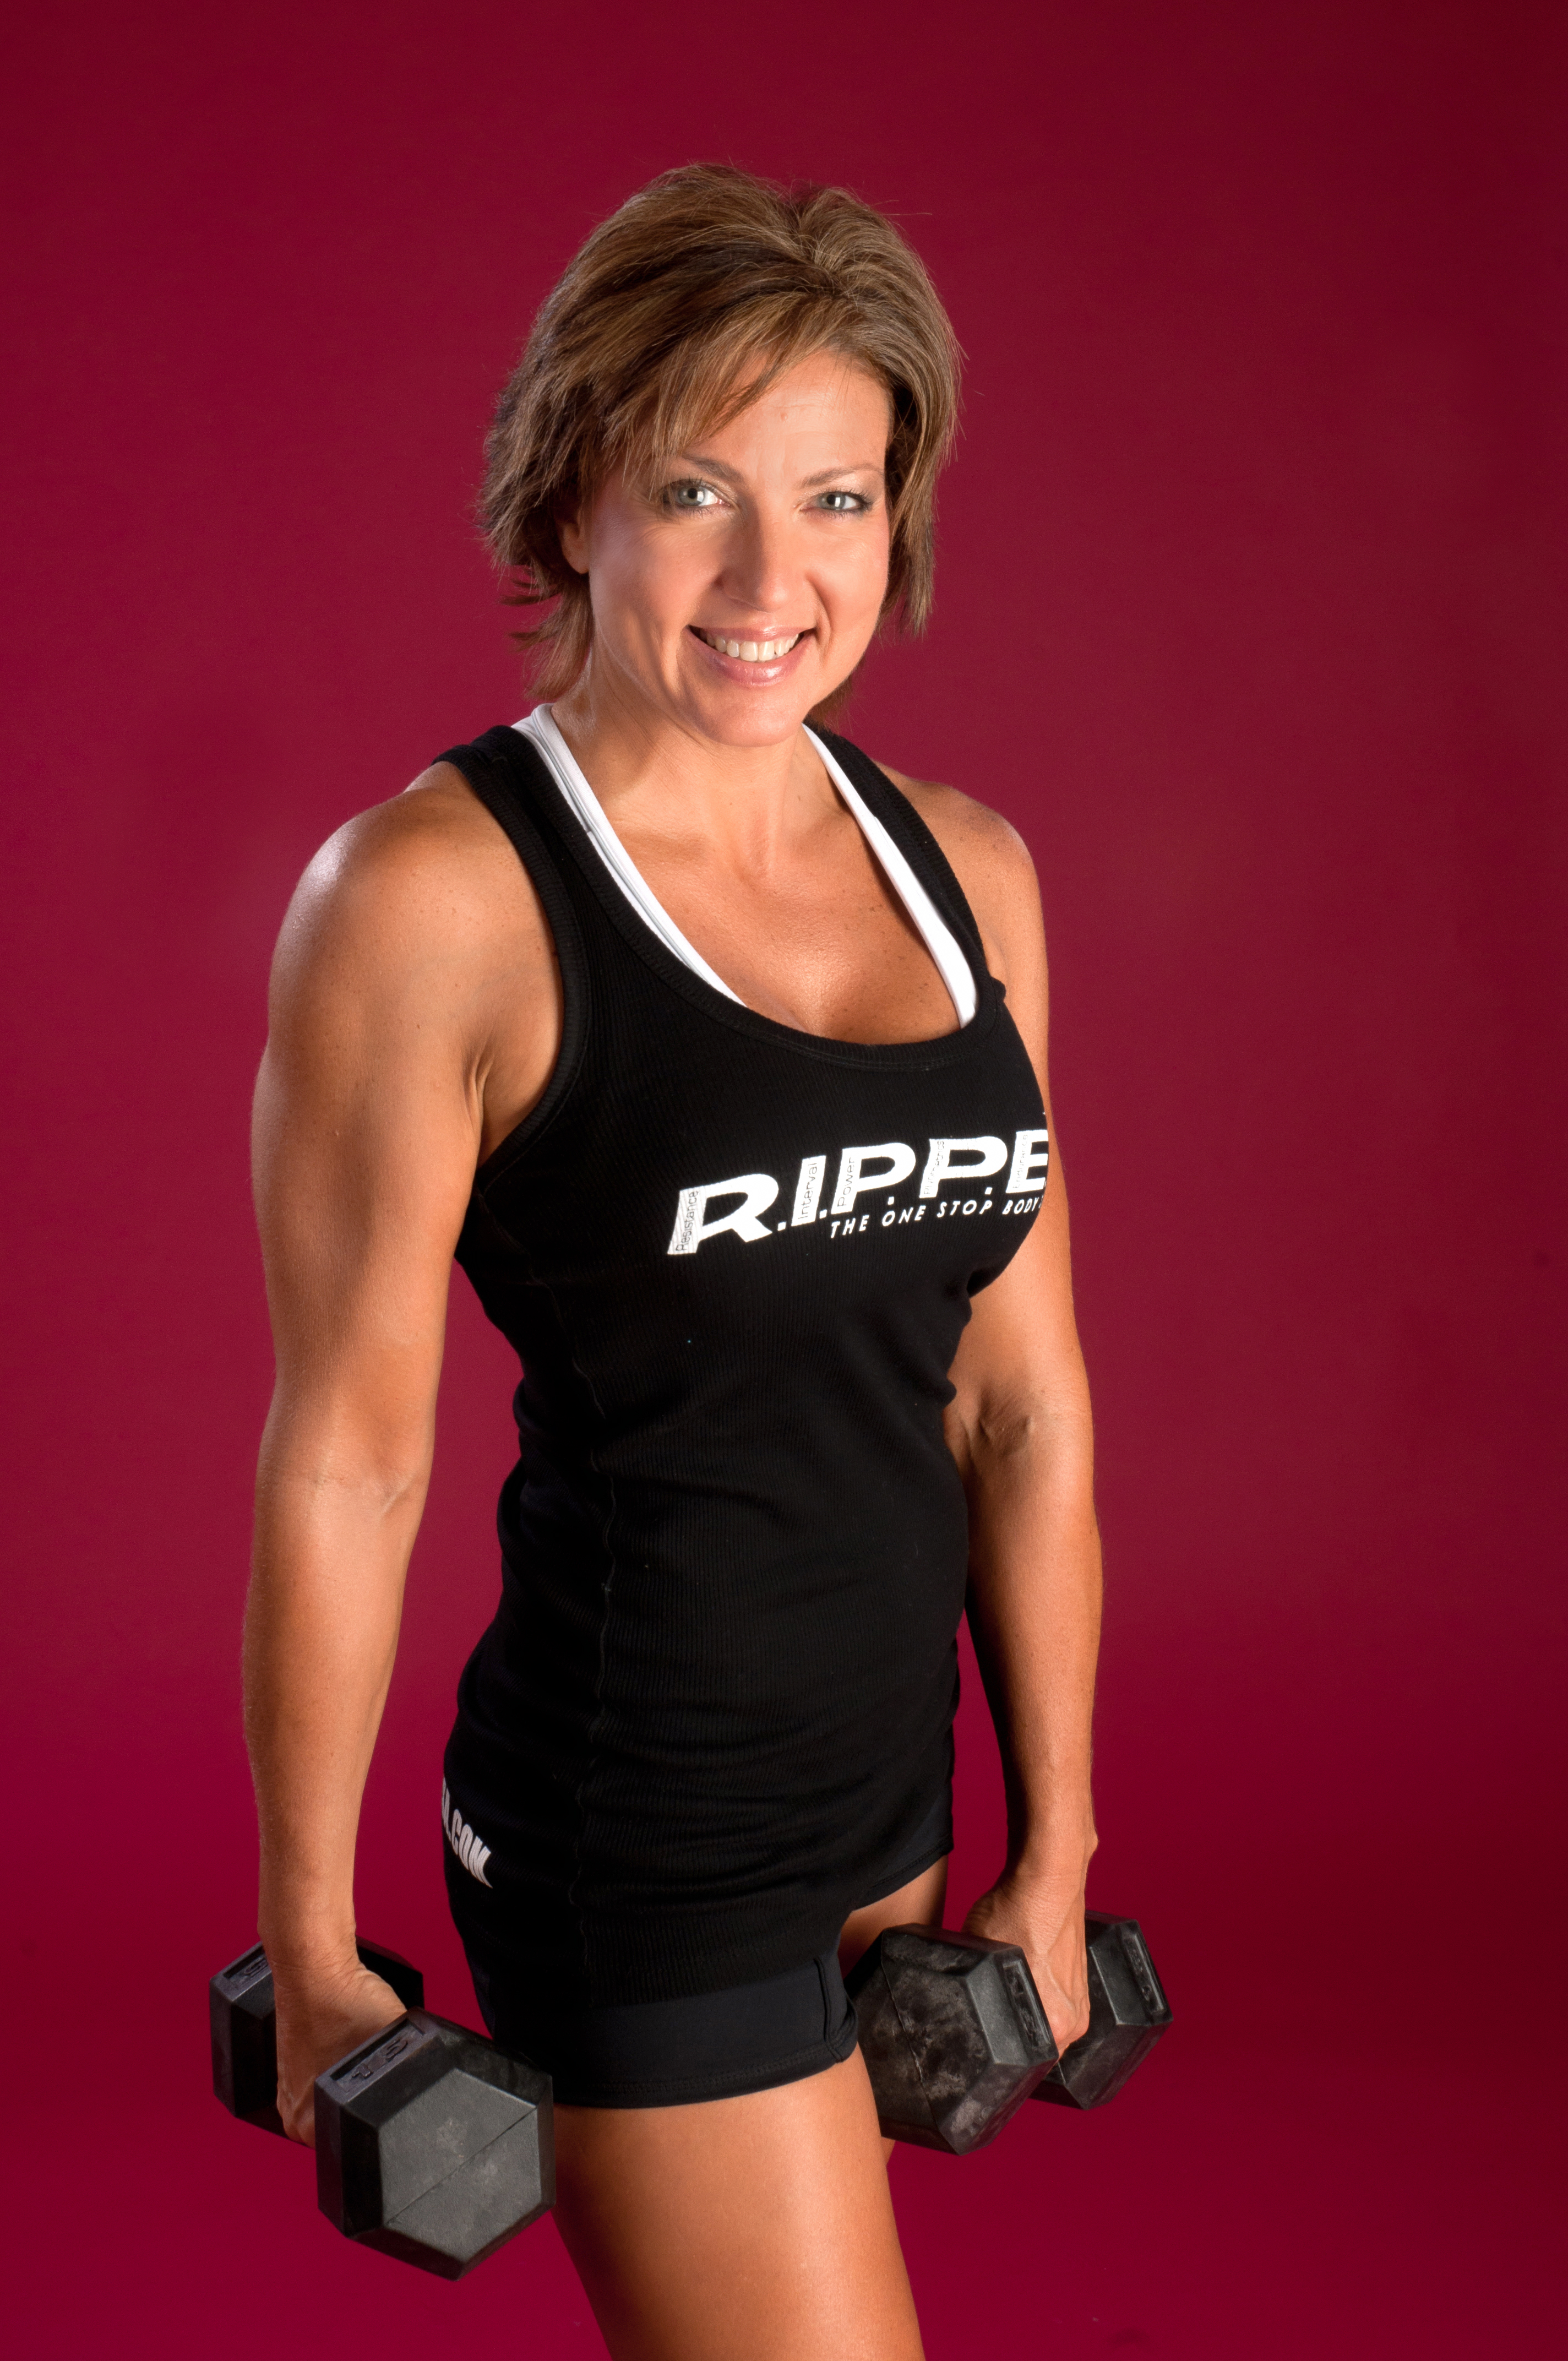 Fitness Trainer Business Portrait